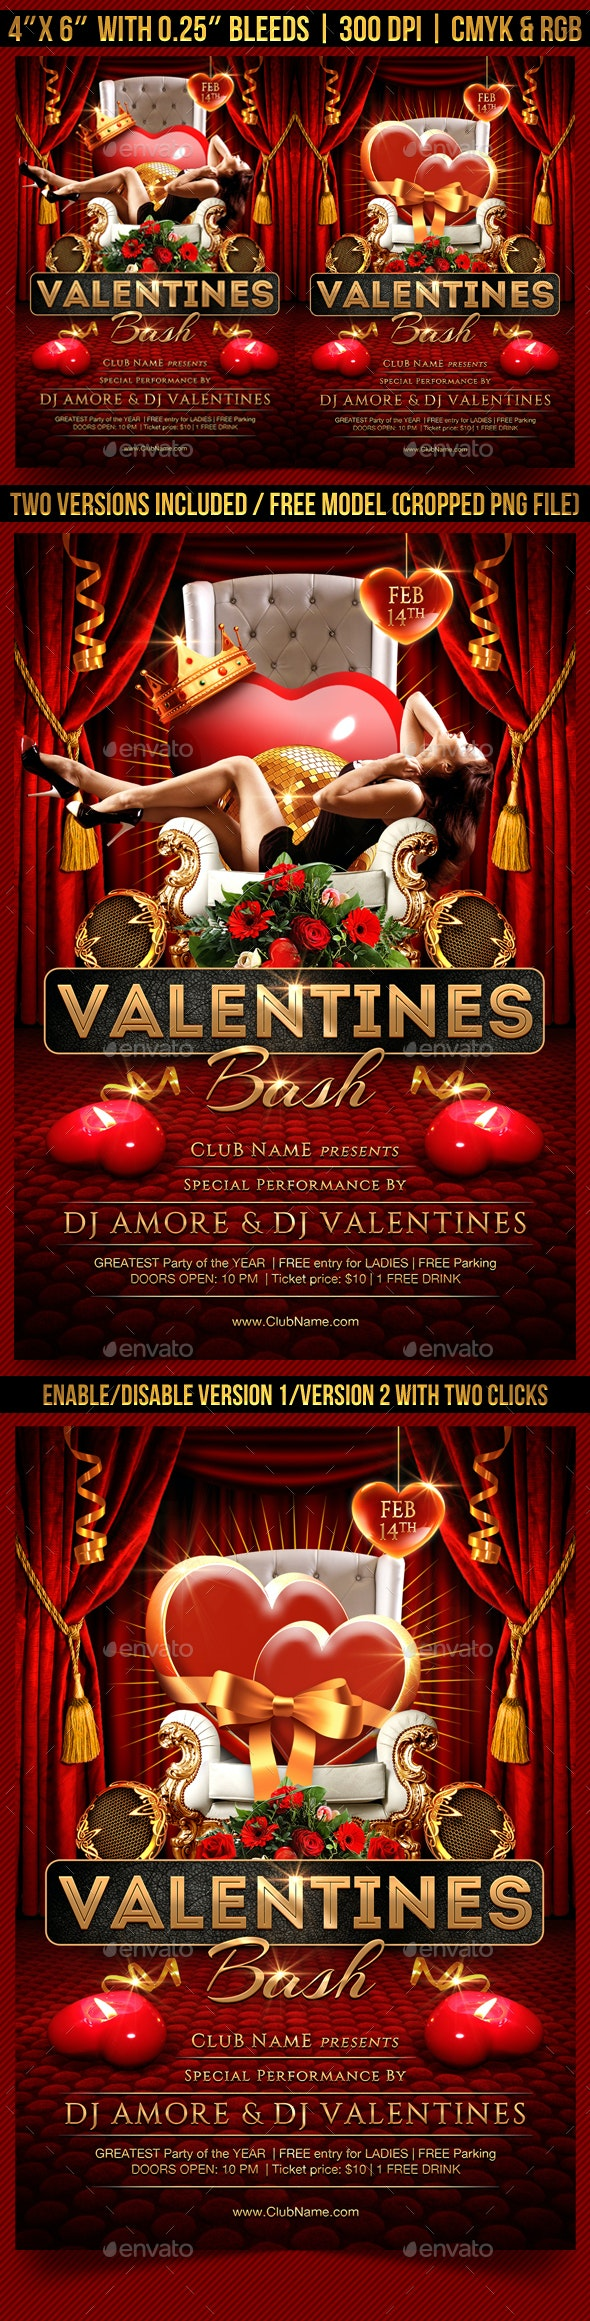 Valentines Bash Flyer - Clubs & Parties Events